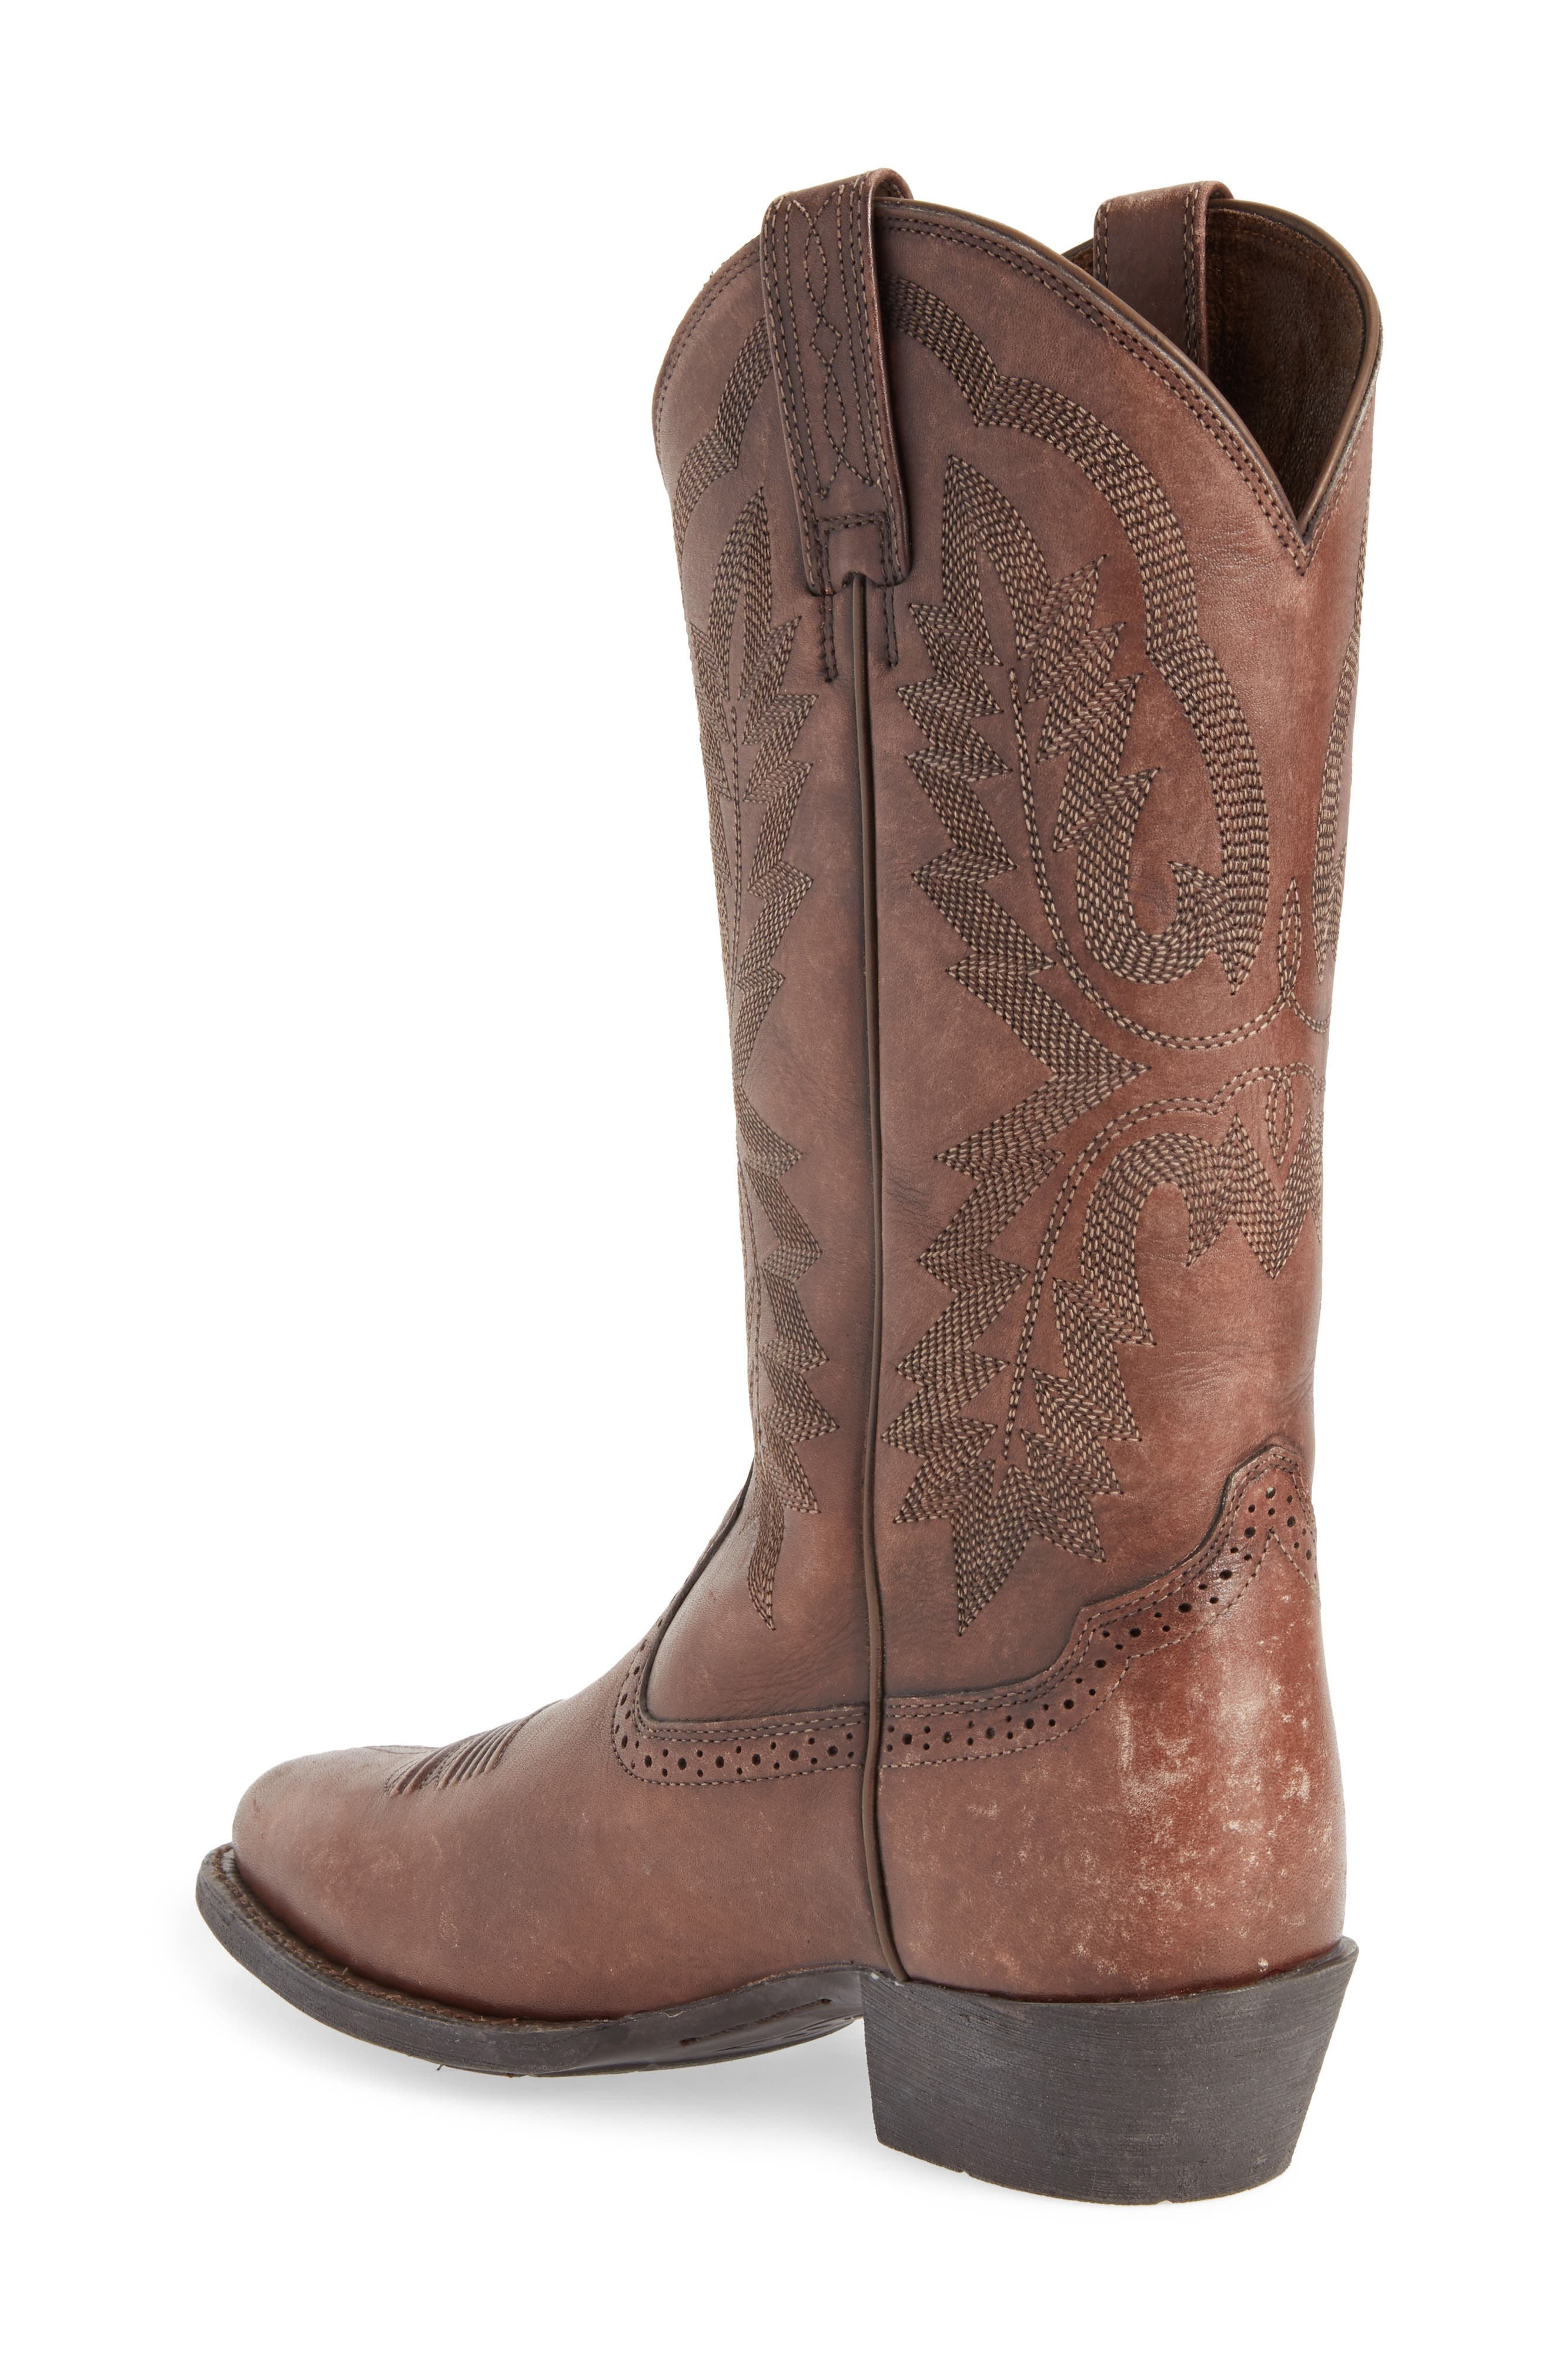 Heritage Calhoun Western R-Toe Boot,                             Alternate thumbnail 2, color,                             NATURAL BROWN LEATHER